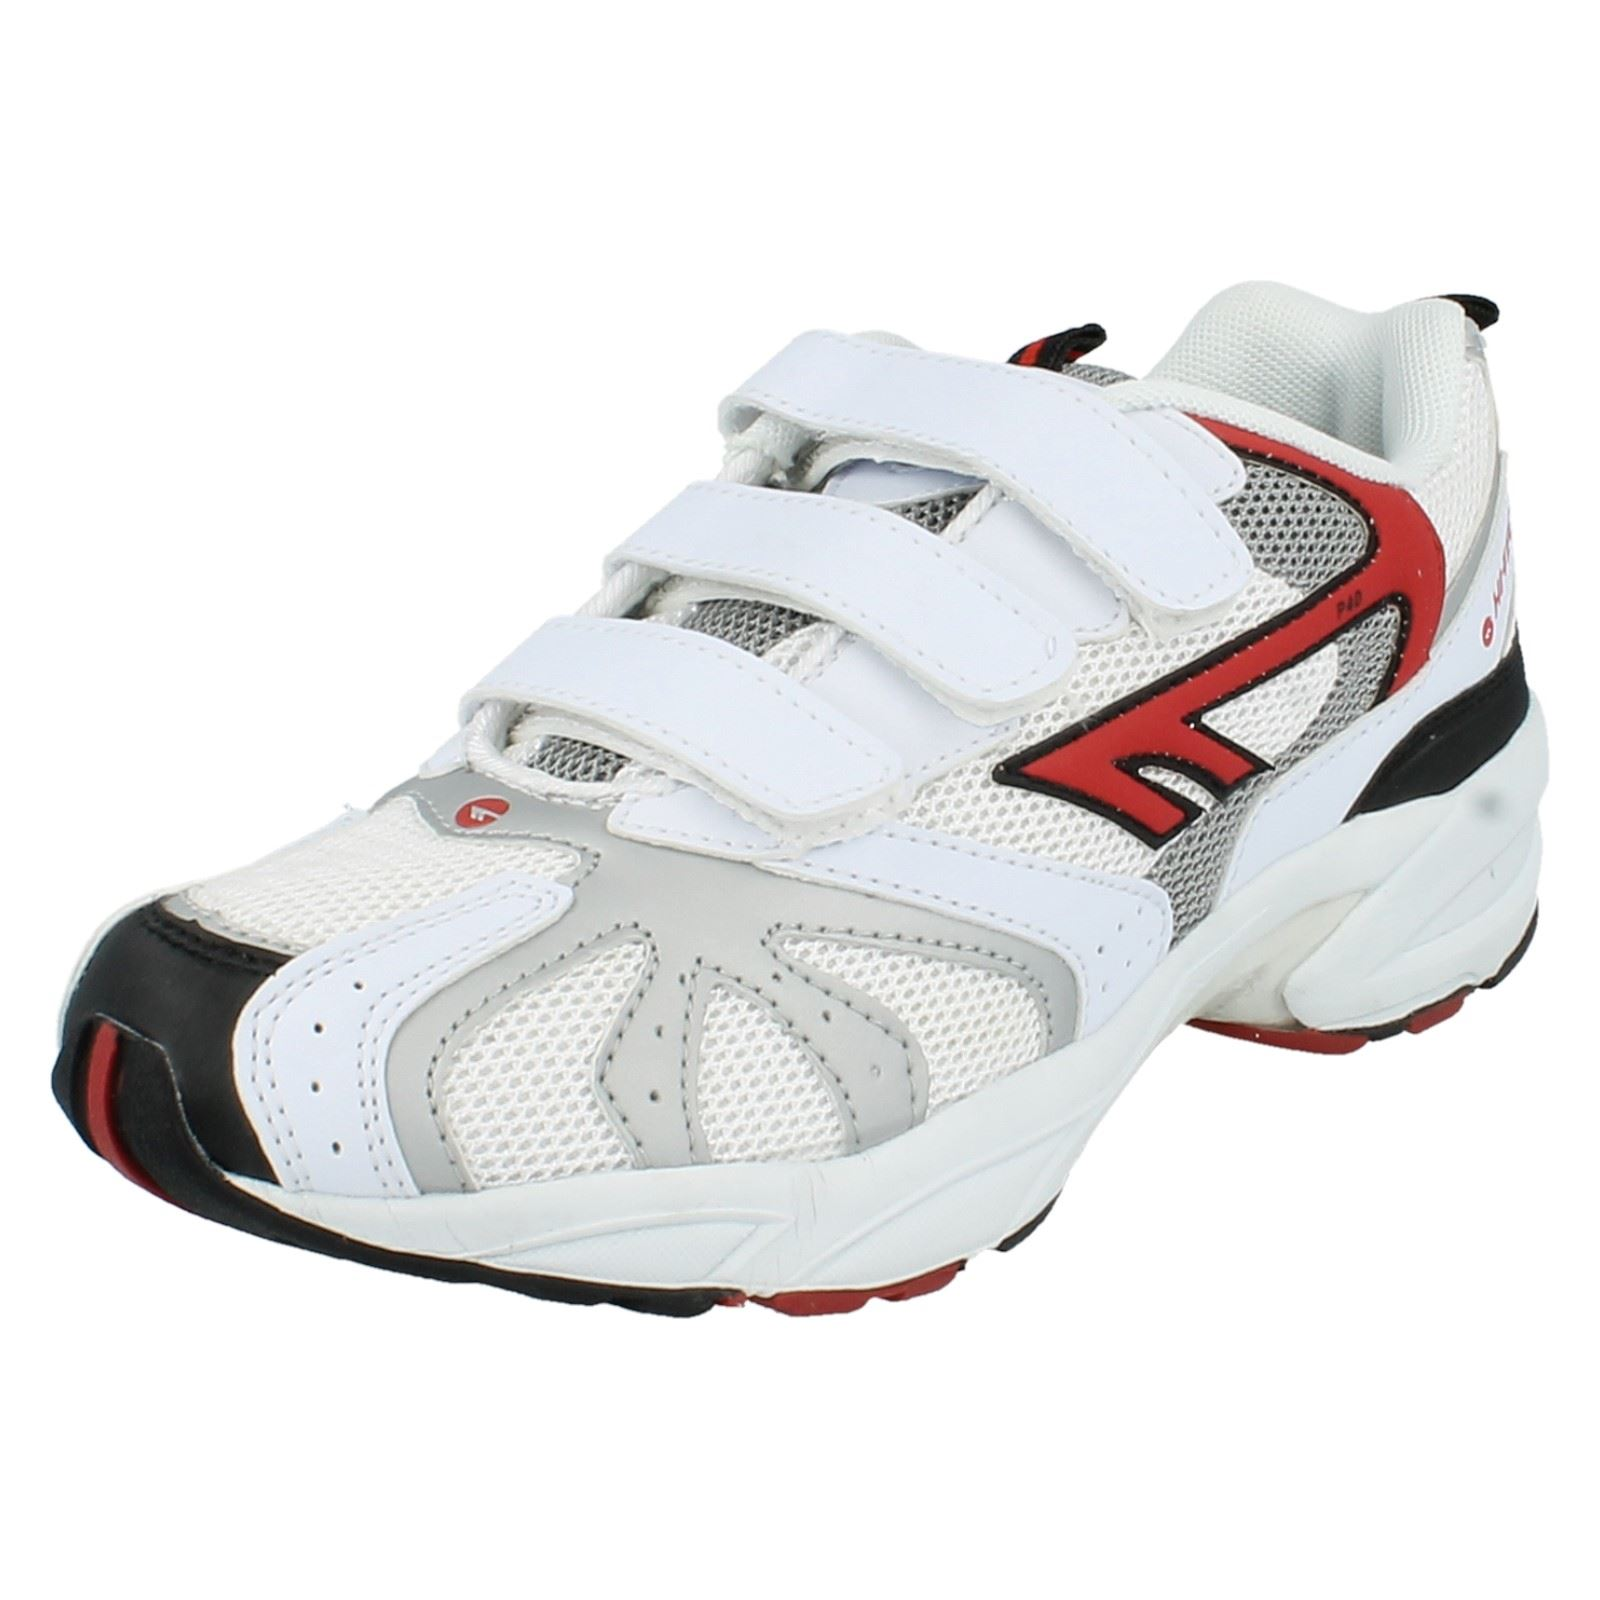 Boys Hi-Tec Trainers P40 EZ JR